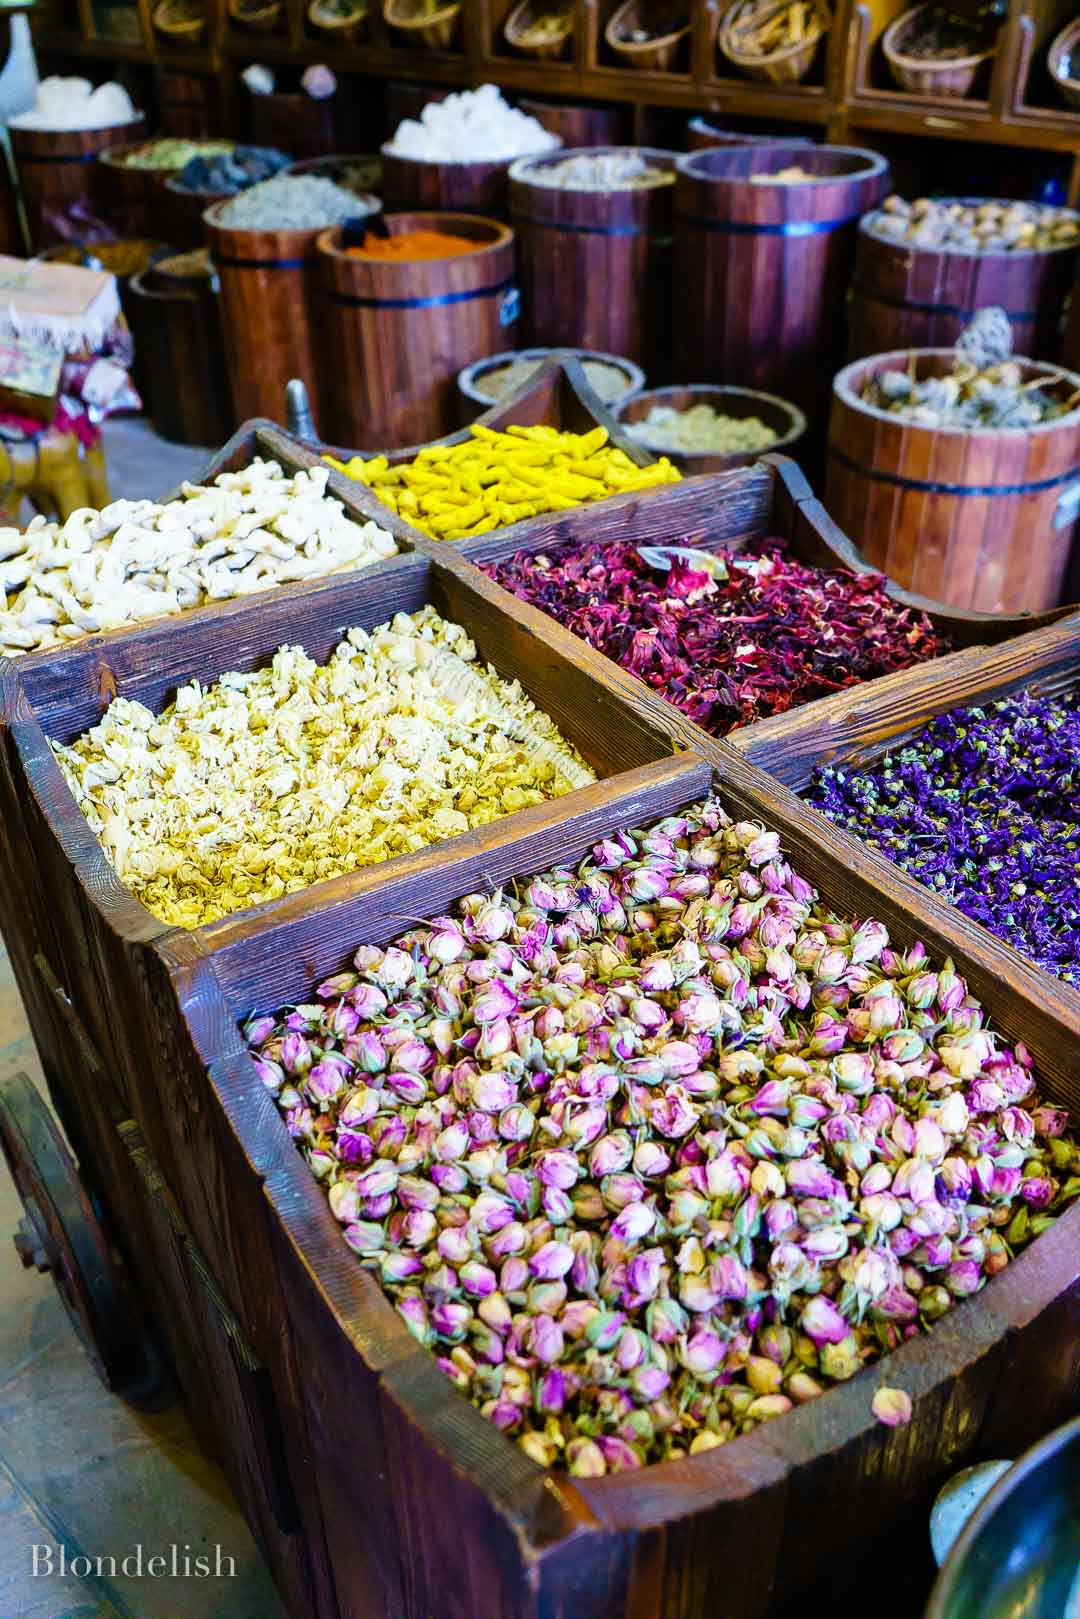 Dubai Spice Souk Market - Best Places to Visit in Dubai - Things to do in Dubai